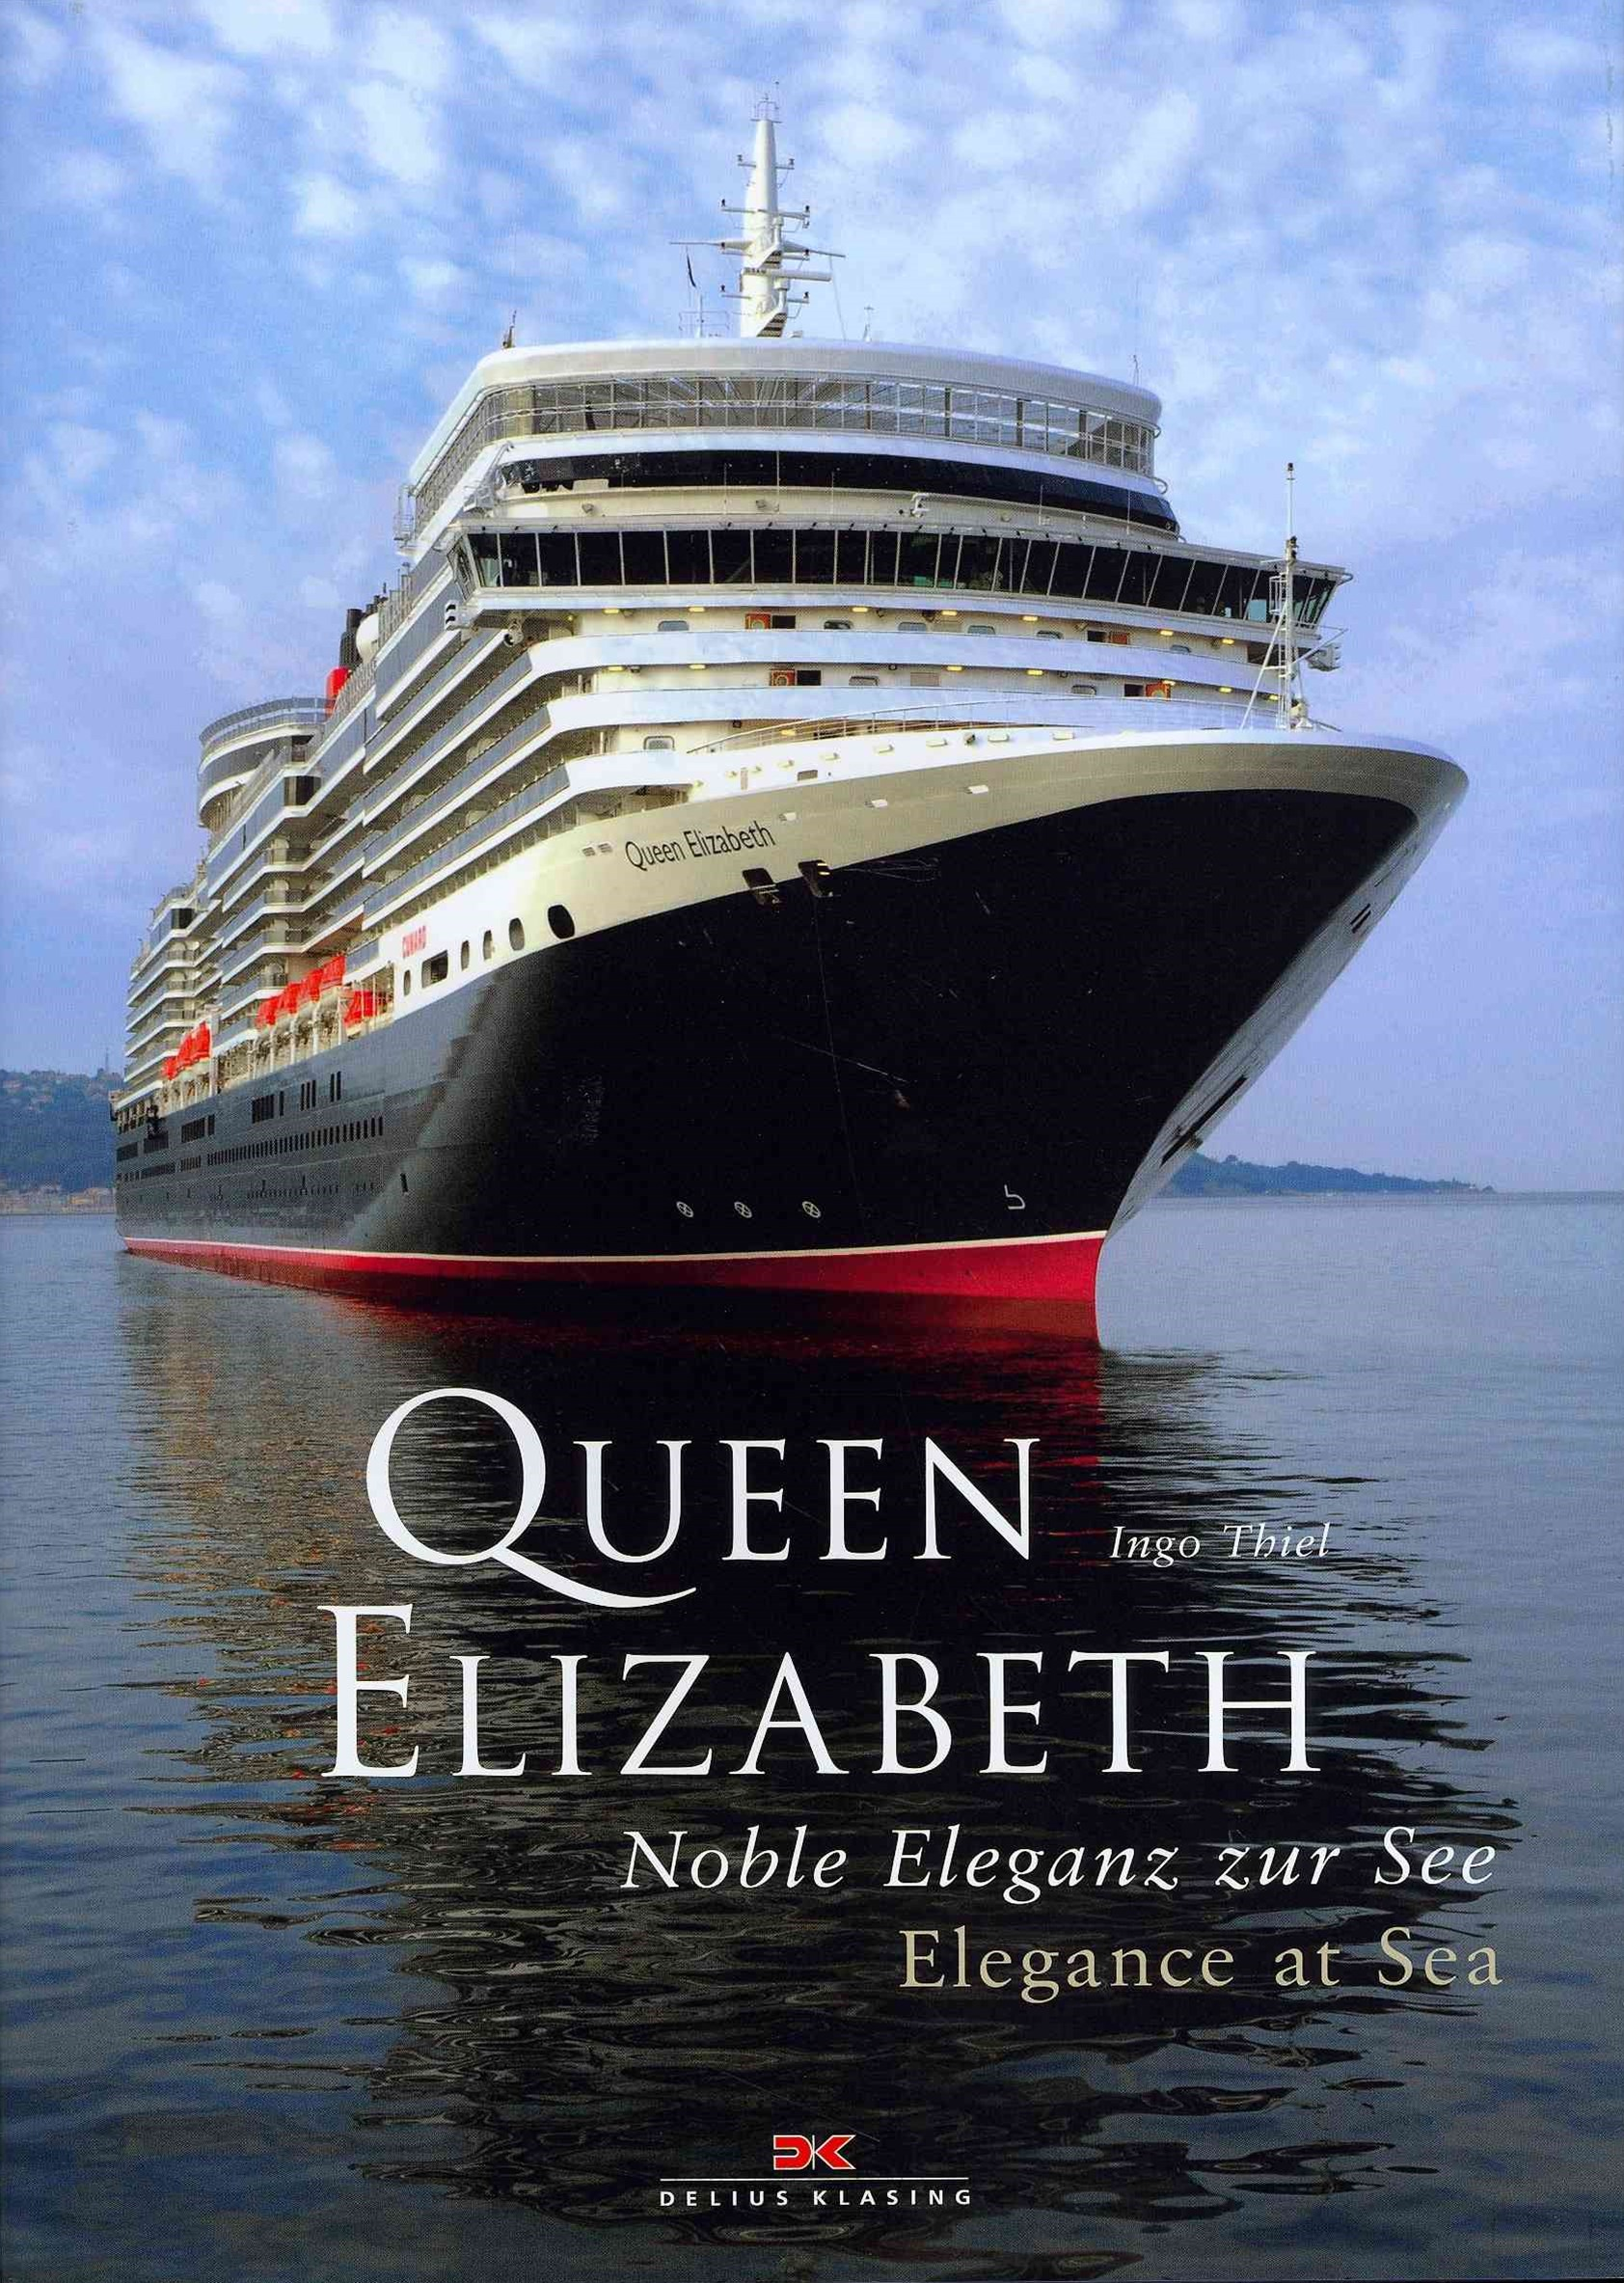 Queen Elizabeth: Elegance at Sea